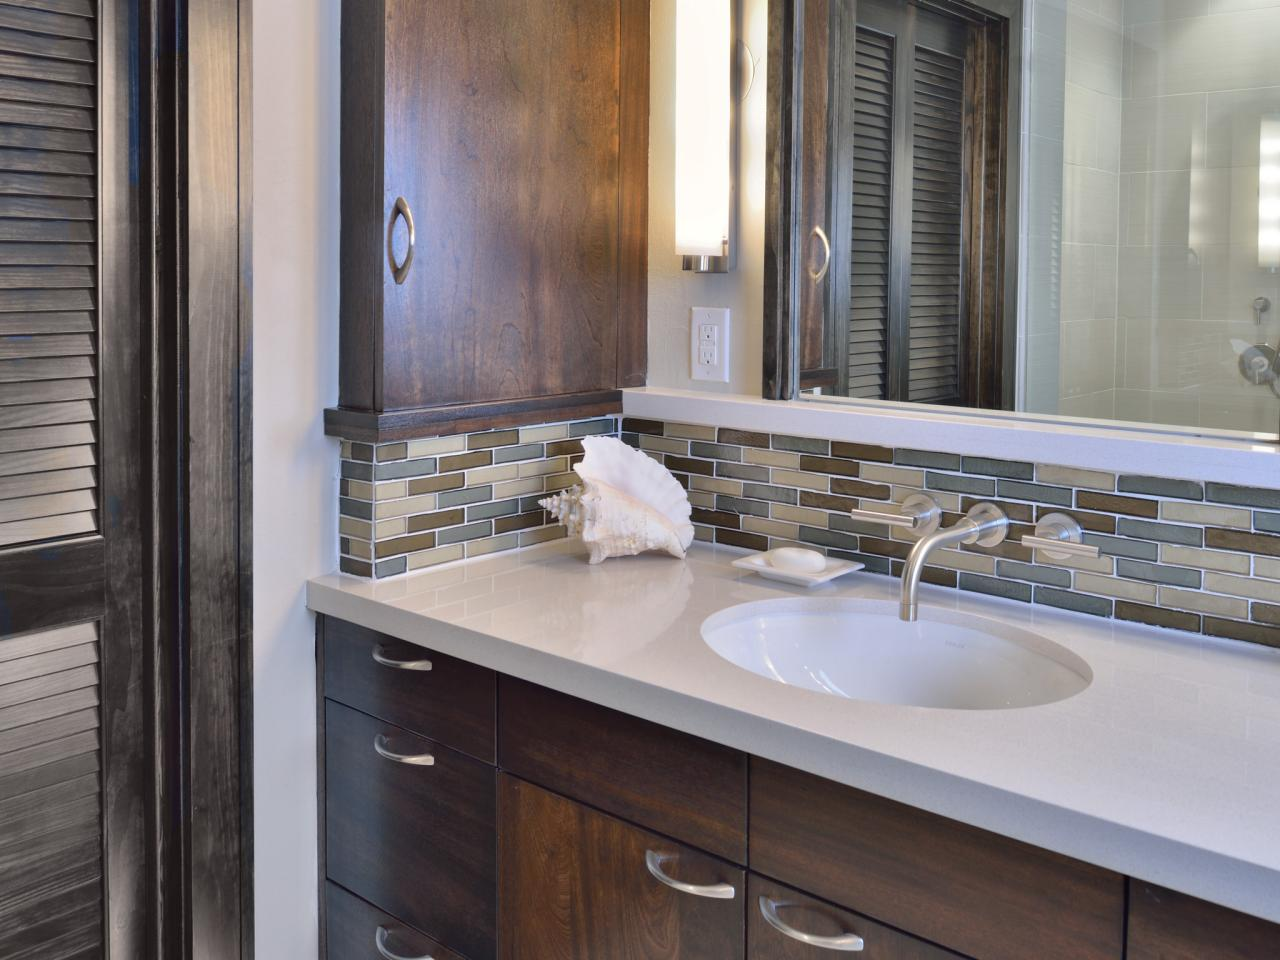 Mosaic Tile Backsplash Adds Beauty and Texture to Modern Bathroom HGTV